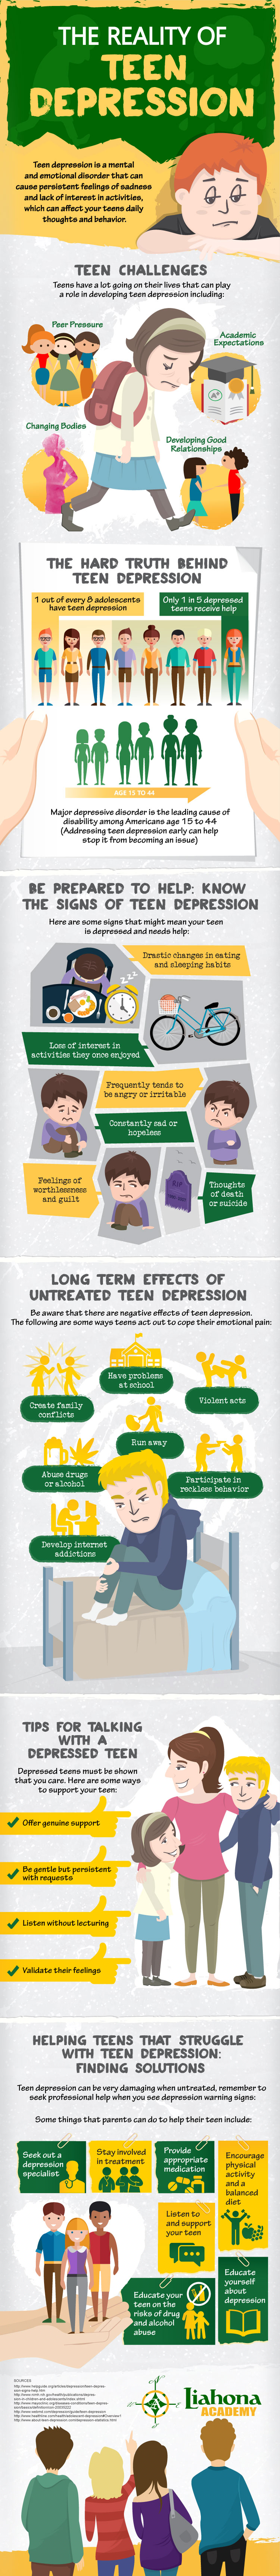 The-Reality-Of-Teen-Depression-Infographic-plaza